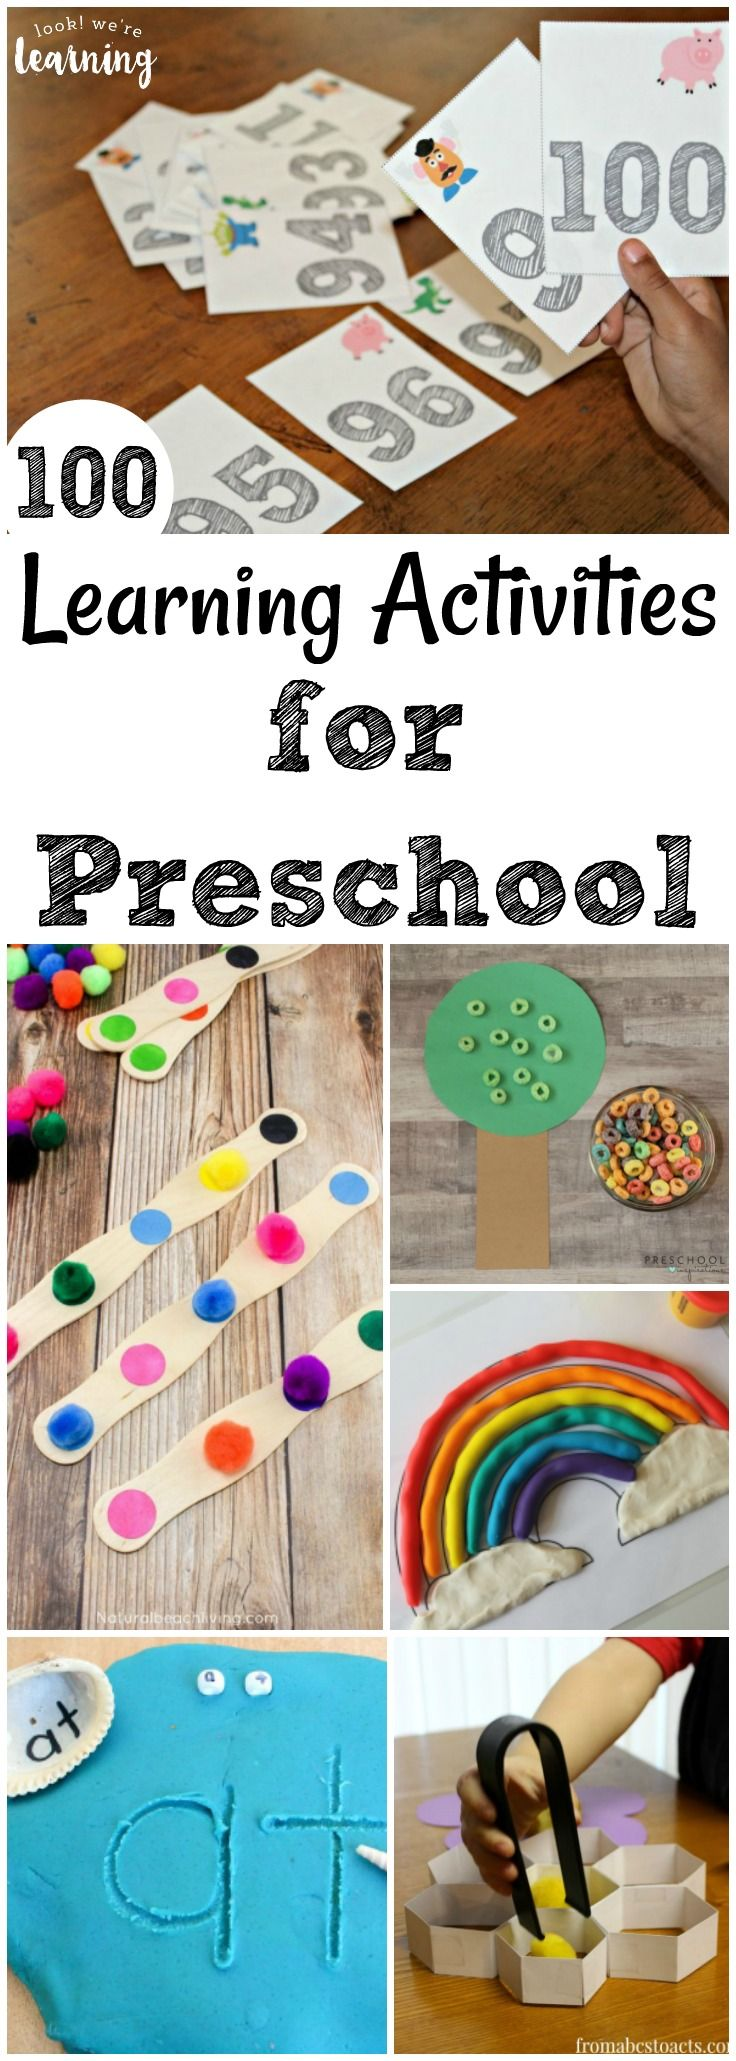 Share some of these fun and hands-on learning activities for preschoolers with your little ones! #preschool #kidactivities #homeschooling